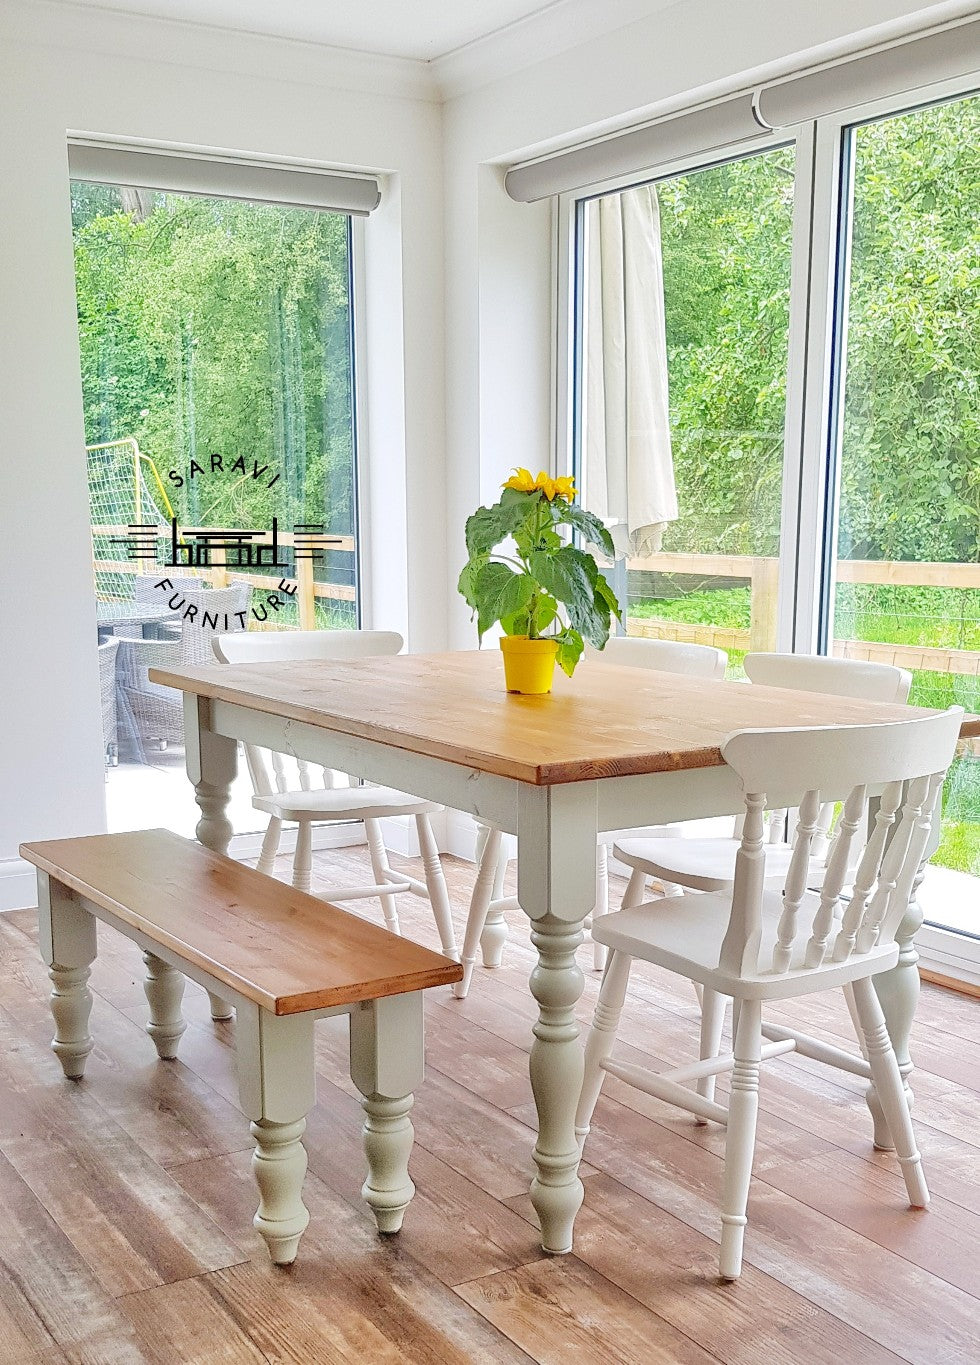 5ft Rustic Farmhouse Dining Table With 4 Chairs And Bench Saravi Furniture